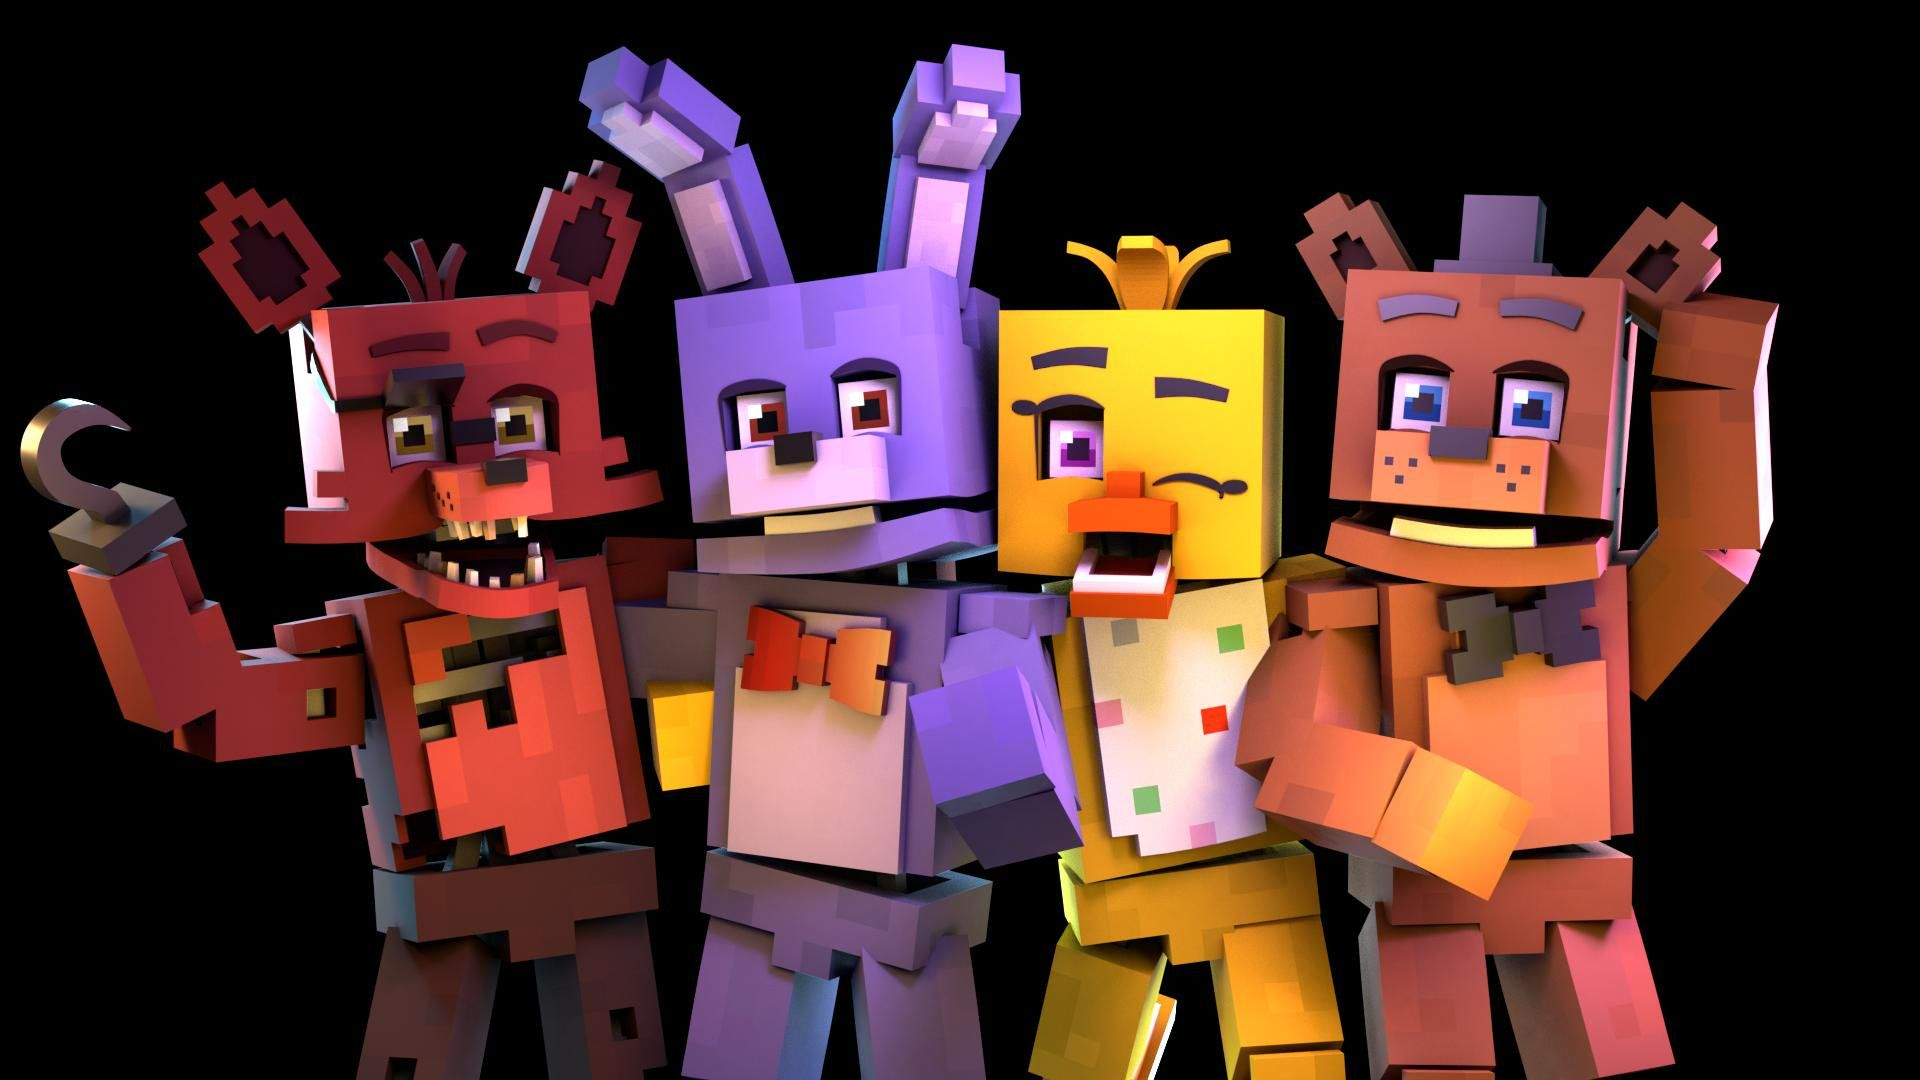 Achebe Spencer On Twitter Fnaf Minecraft Fnaf Fnaf 1